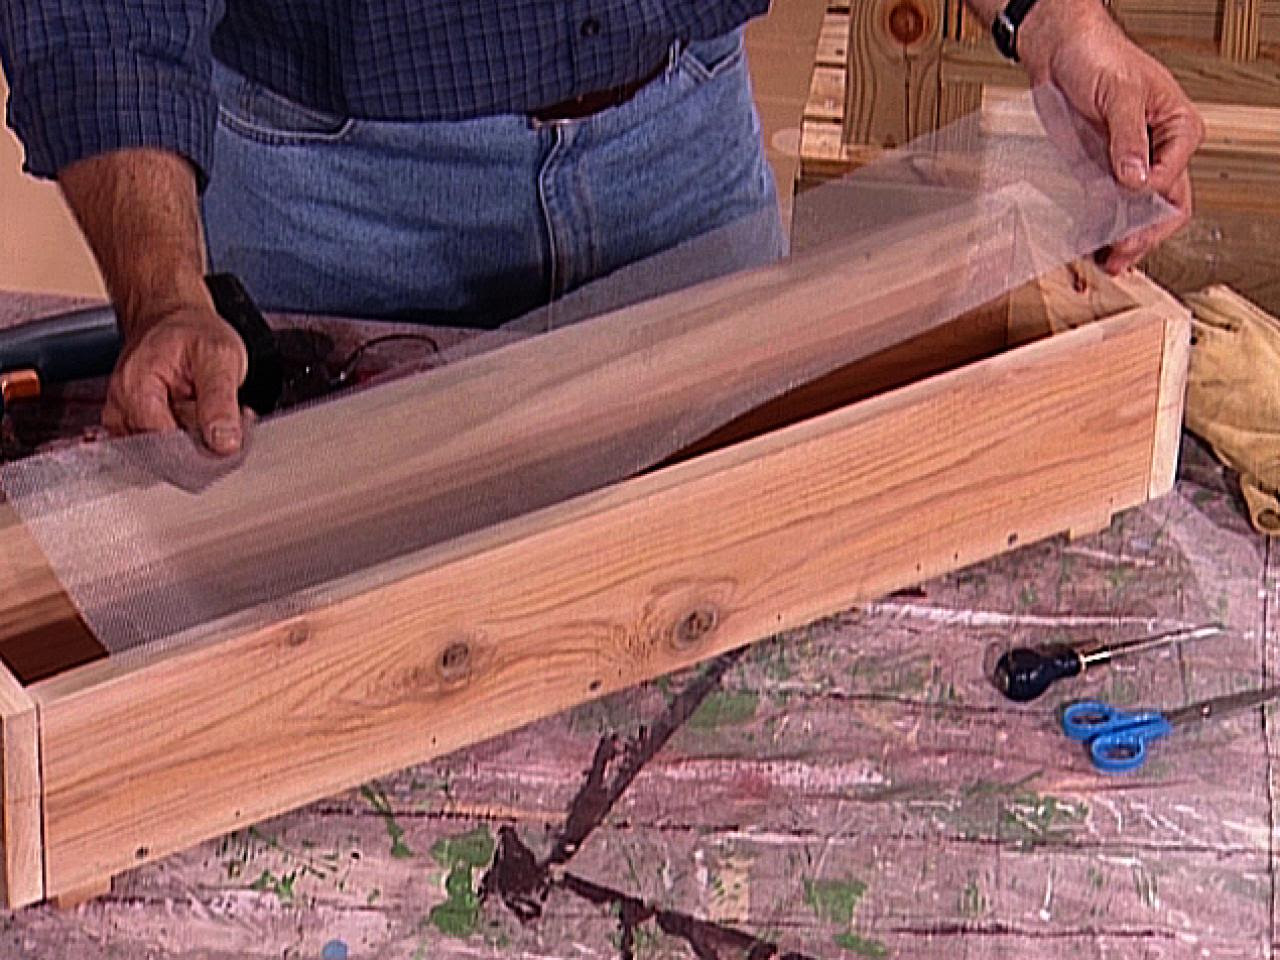 How to Build a Wooden Planter Box | how-tos | DIY